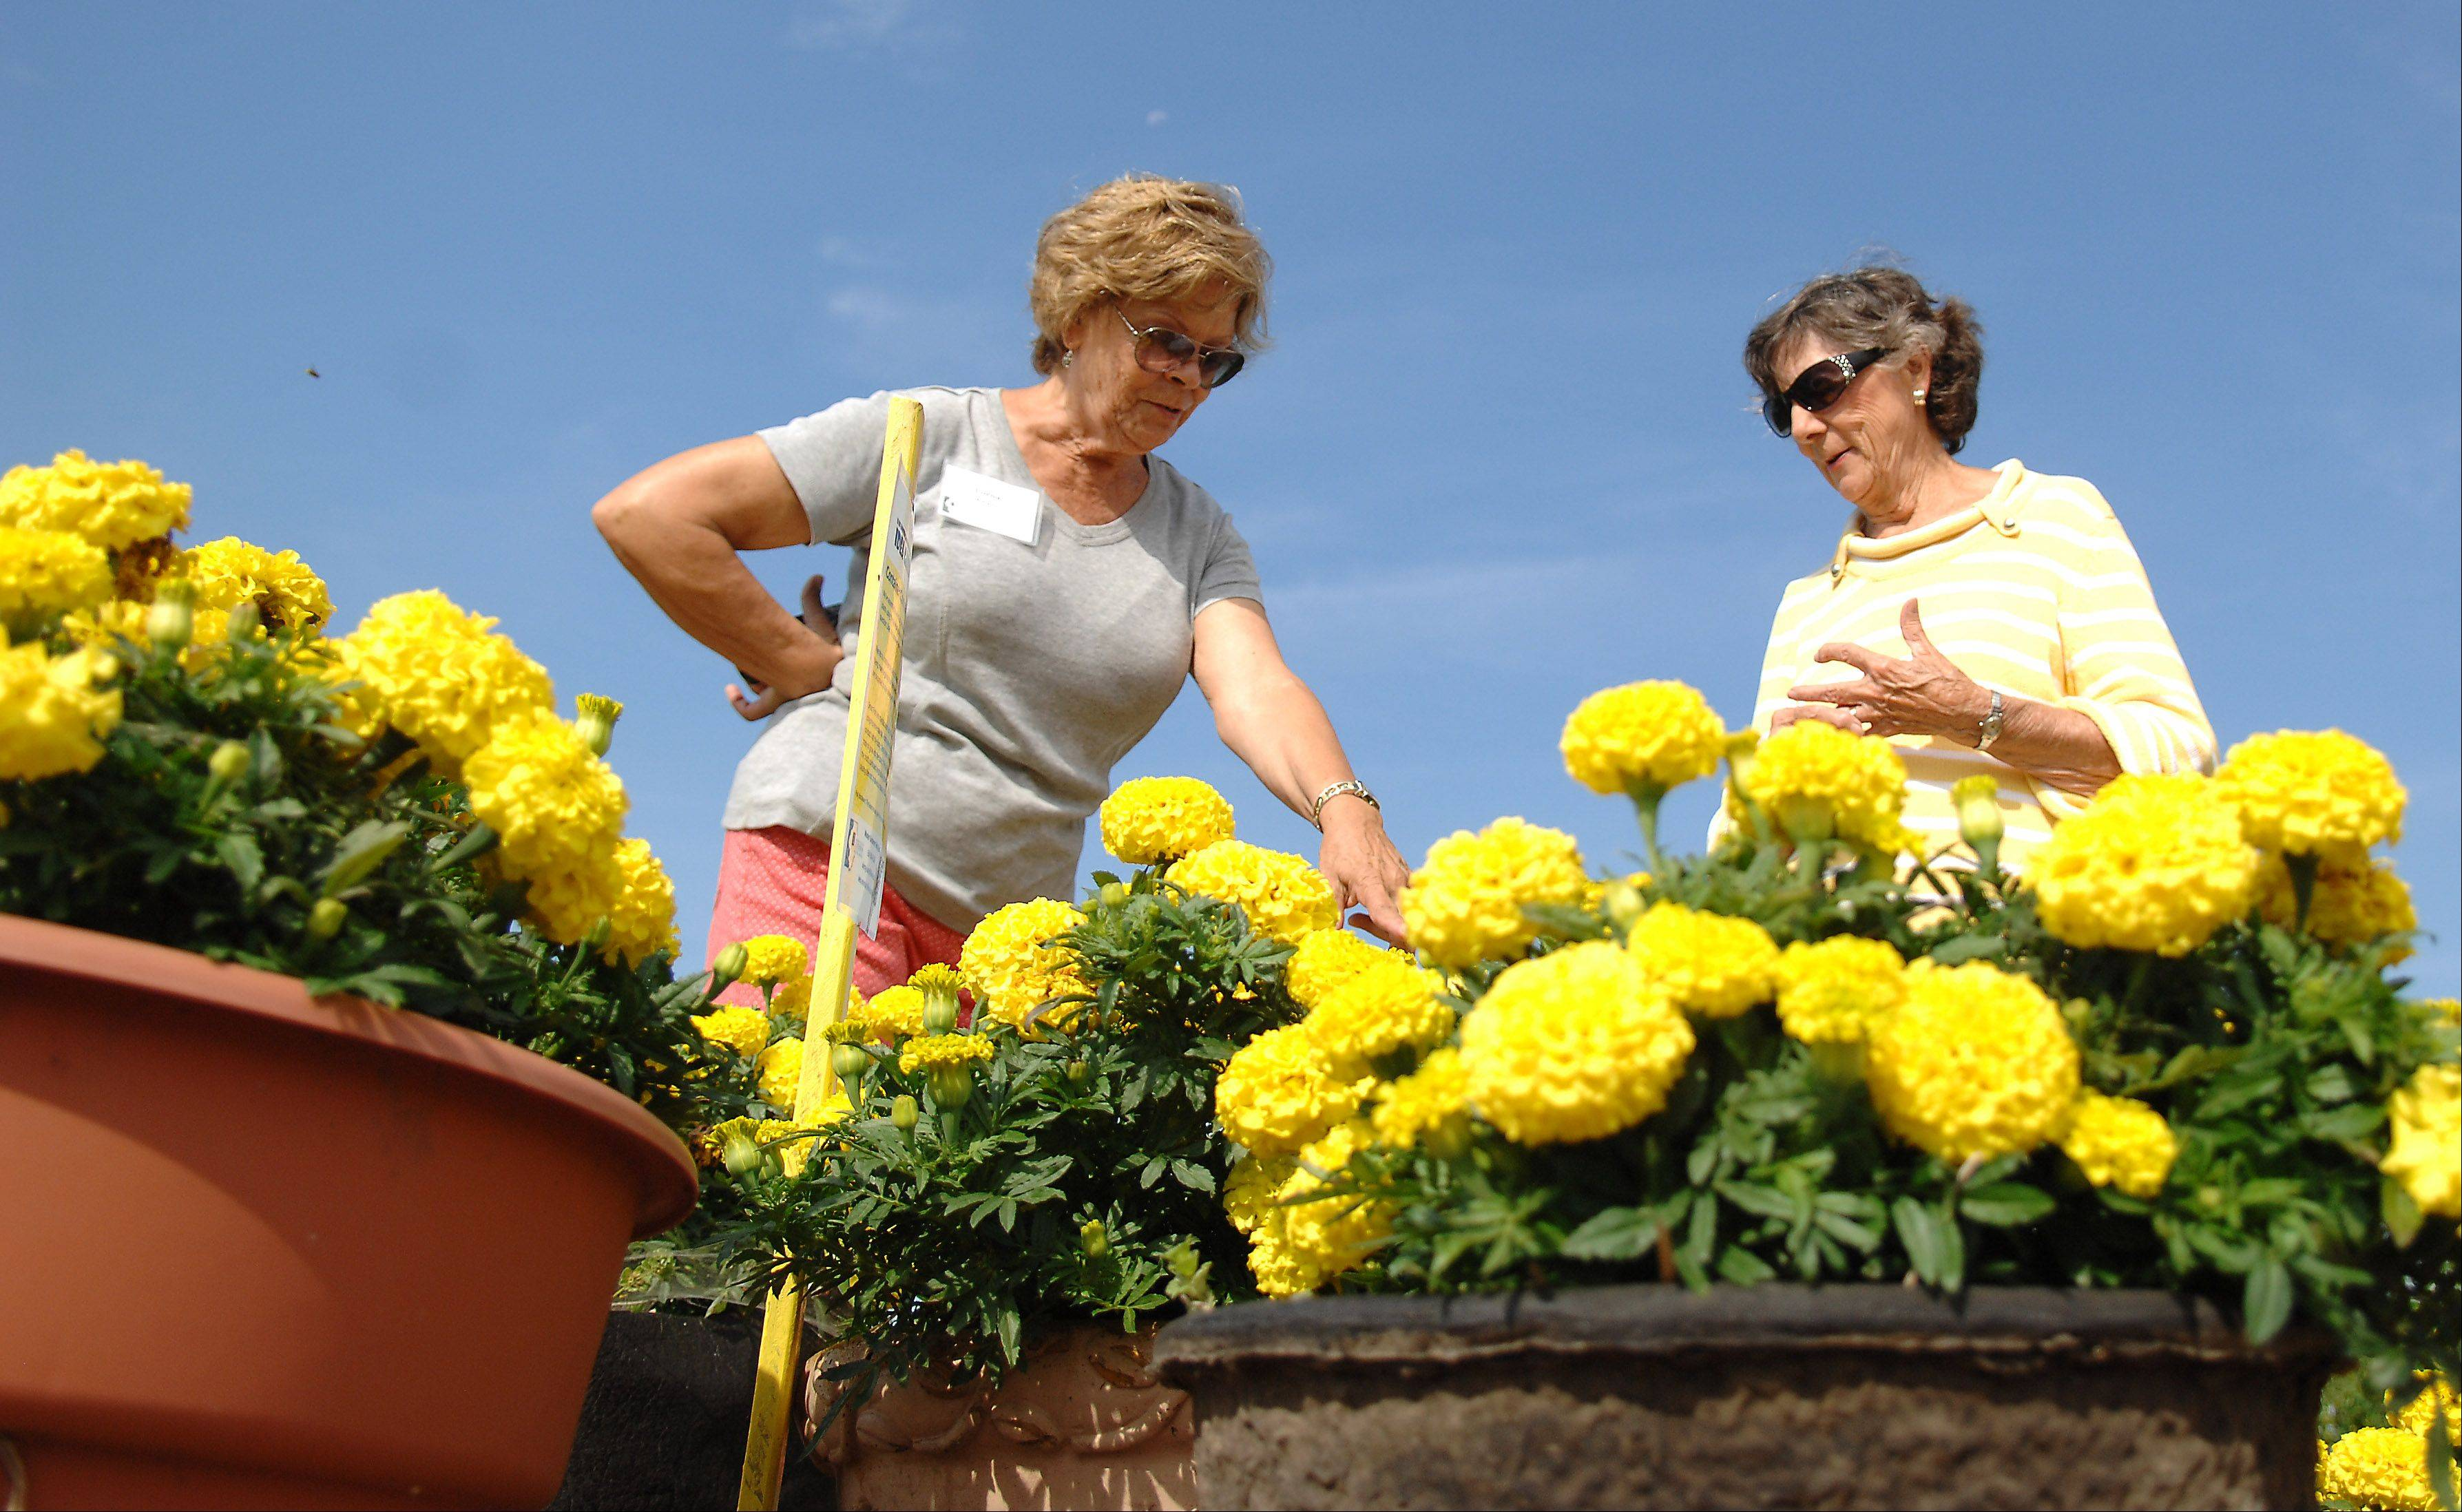 Lorna Marquis, left, an intern with the Kane County Master Gardeners, shows JoAnne Jochum, of Elgin, the difference in the Marigolds planted in containers versus those planted in the ground at the Master Gardeners' Idea Garden in St. Charles Tuesday. The Idea Garden features combinations of flowers, herbs and vegetables designed to easily replicate at home.